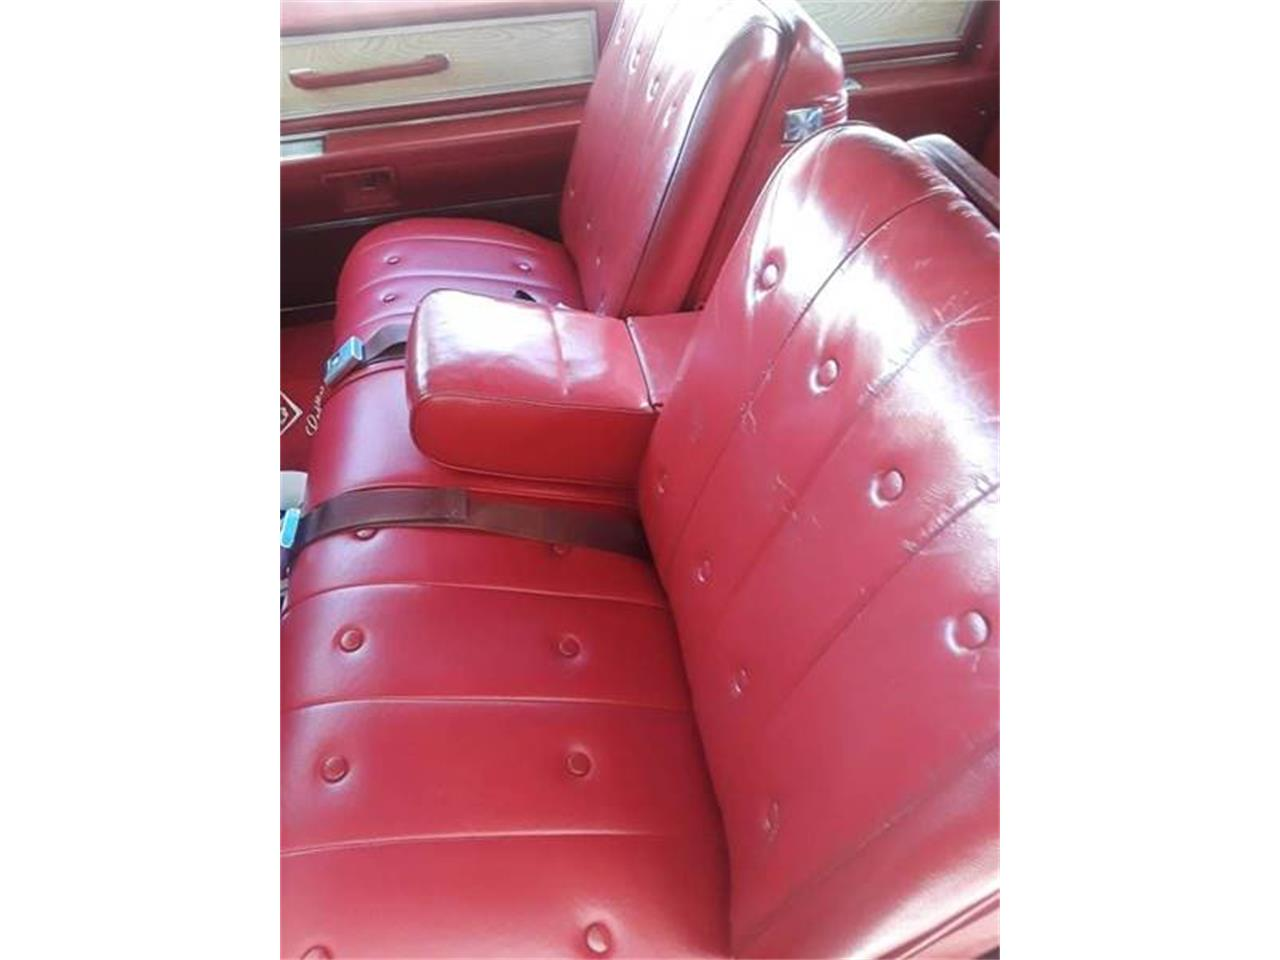 1968 Cadillac CT6 for sale in Long Island, NY ...